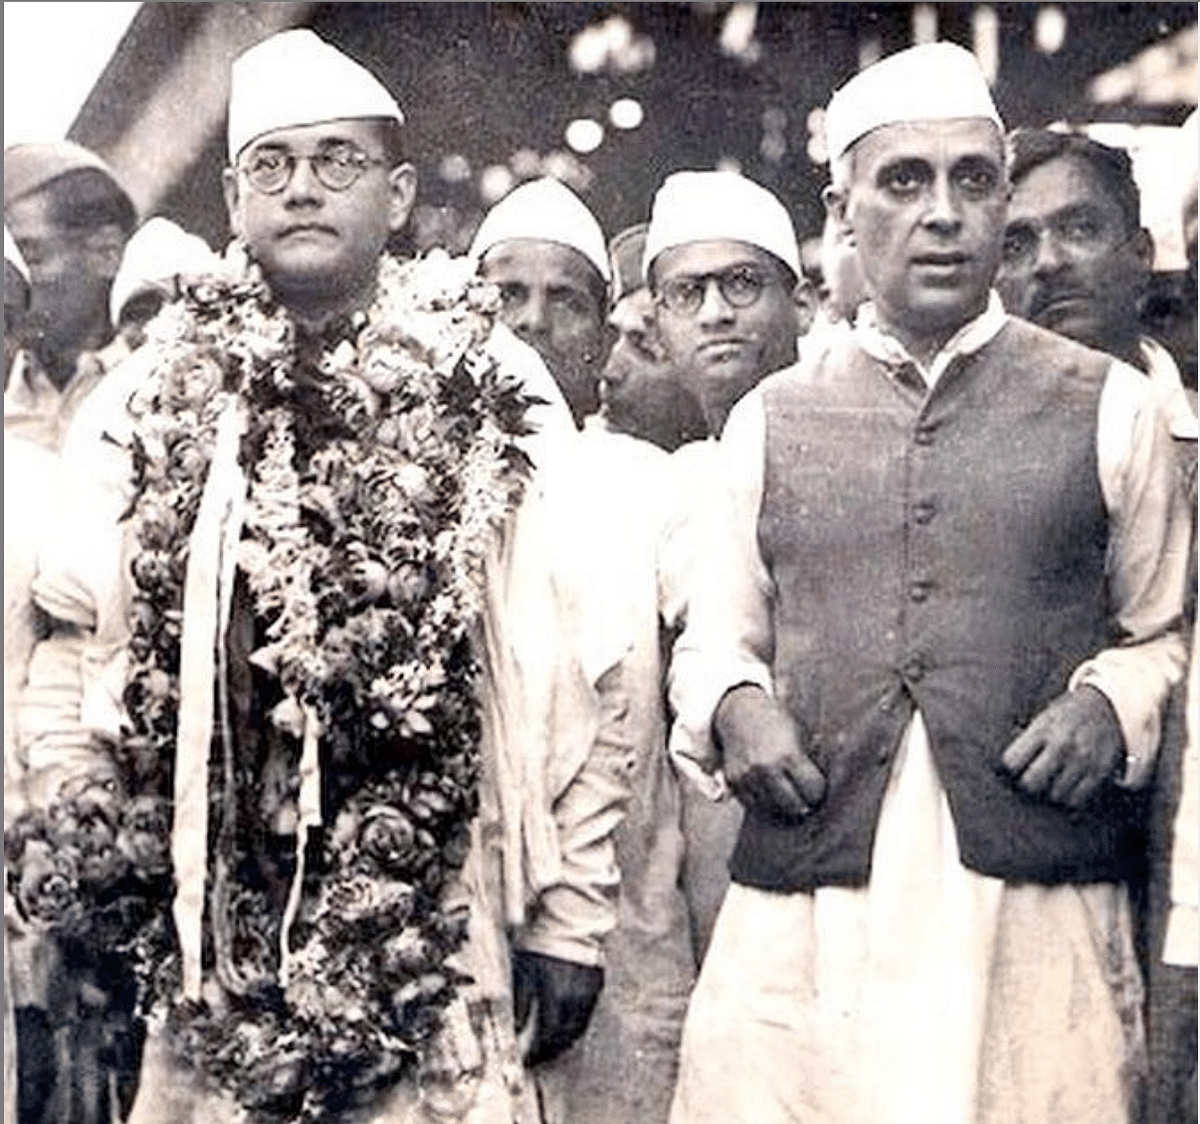 Netaji Subhas Chandra Bose's letters to Nehru show a warmth and intimacy that is often overlooked